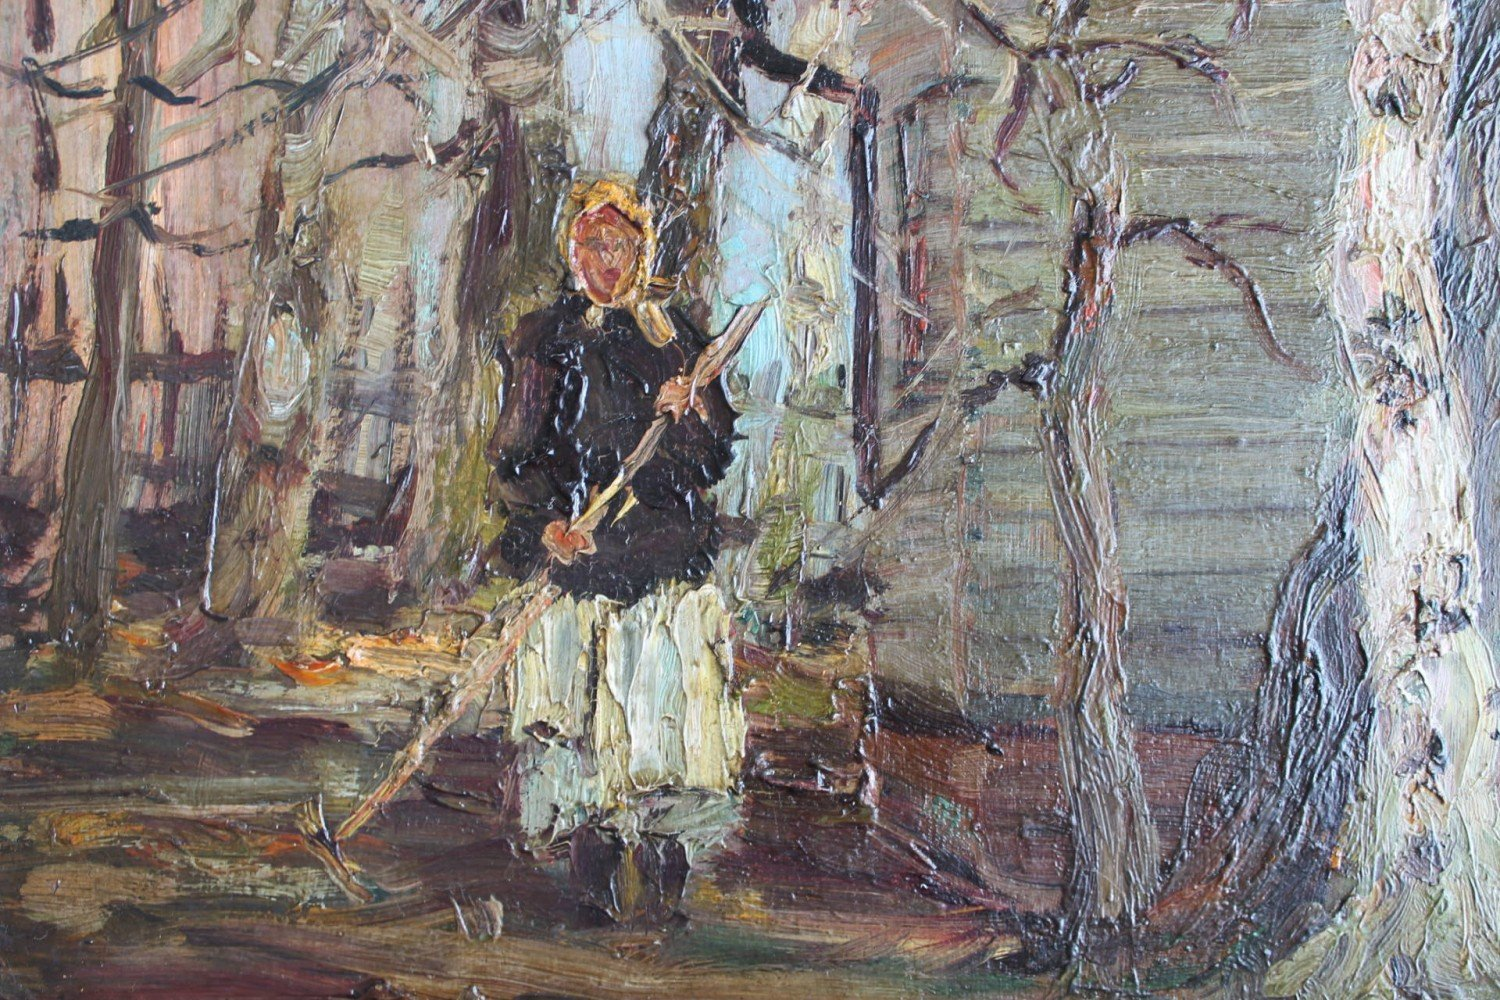 Woman Raking in a Yard with Church Spire and Dome by Louis Bosa